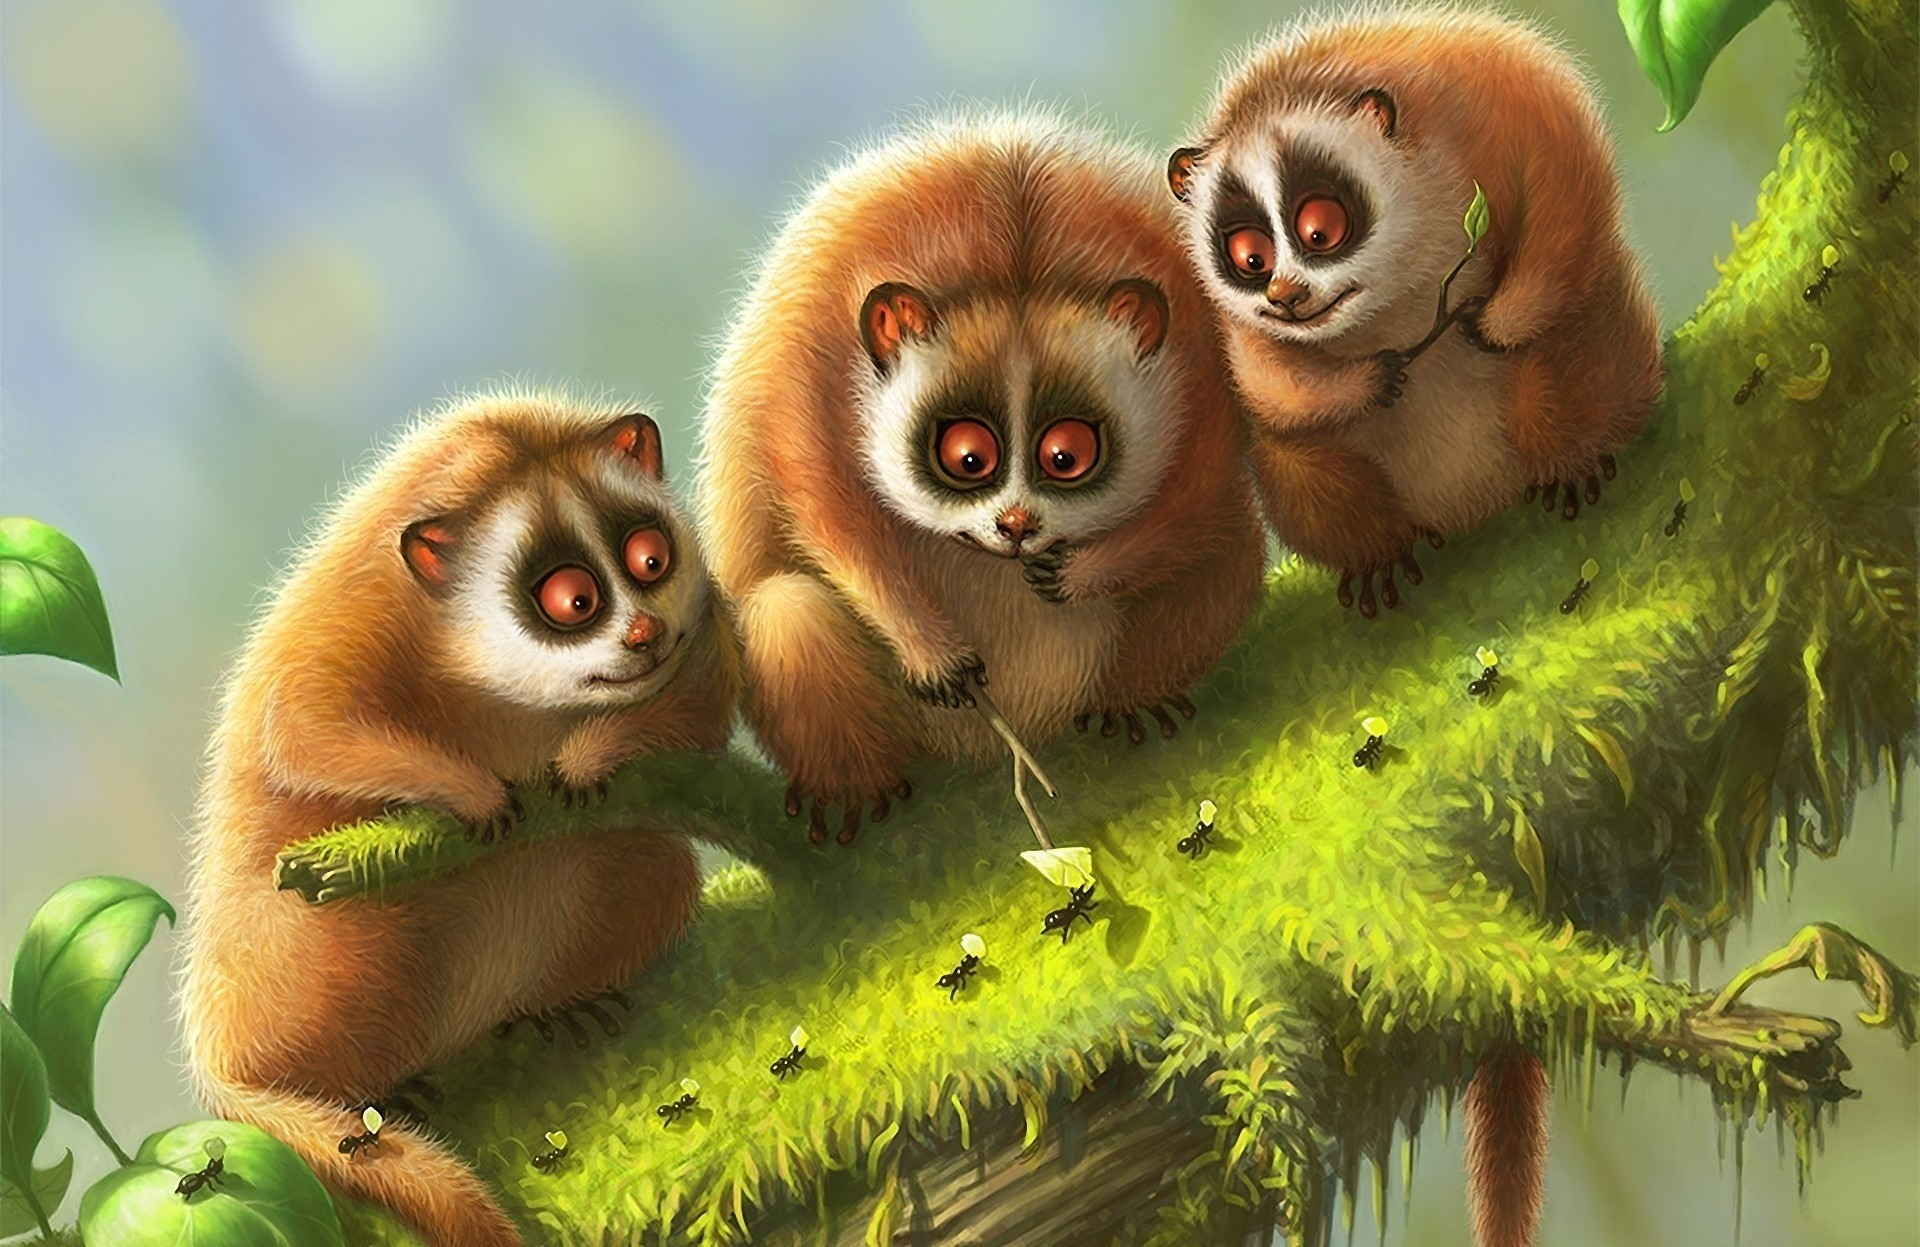 104120 download wallpaper Art, Lemur, Branch, Animals, Moss, Lemurs screensavers and pictures for free